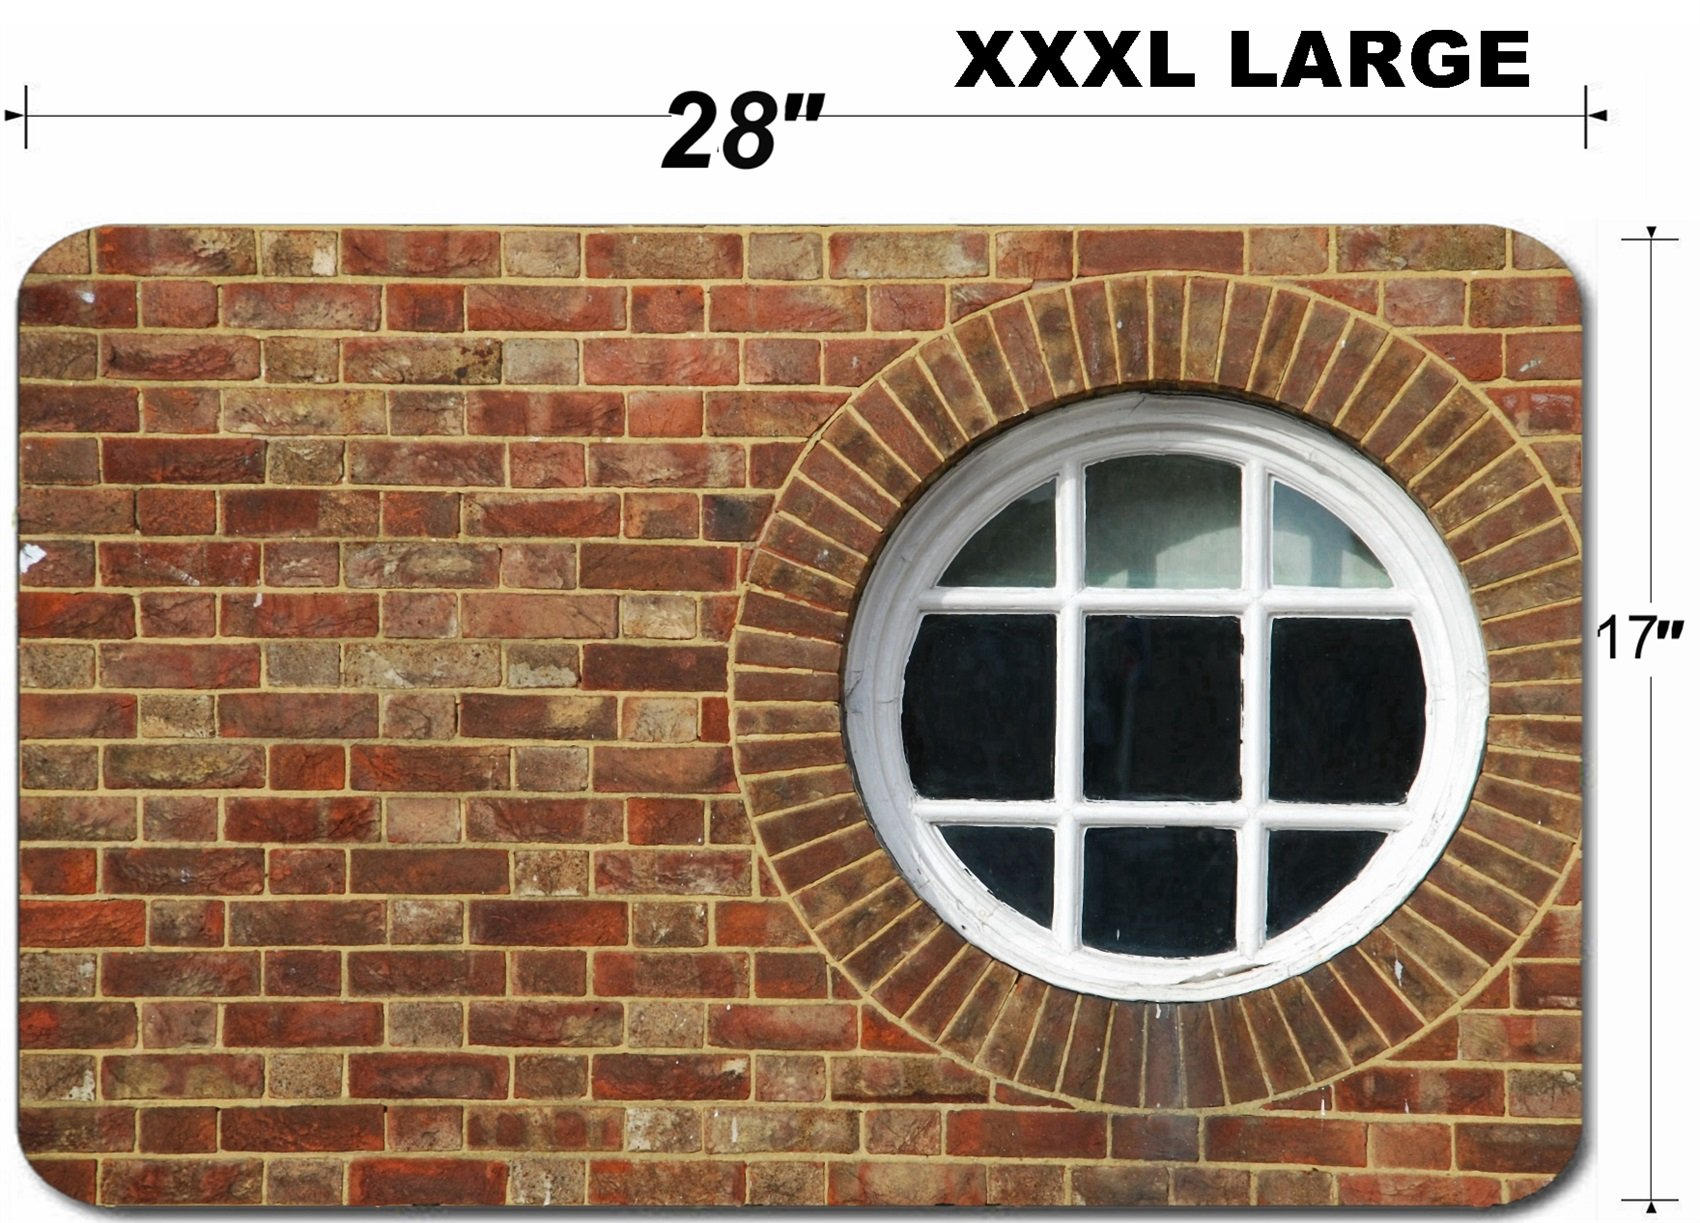 Liili Large Table Mat Non-Slip Natural Rubber Desk Pads round and vintage wooden window on a wall building Photo 7131279